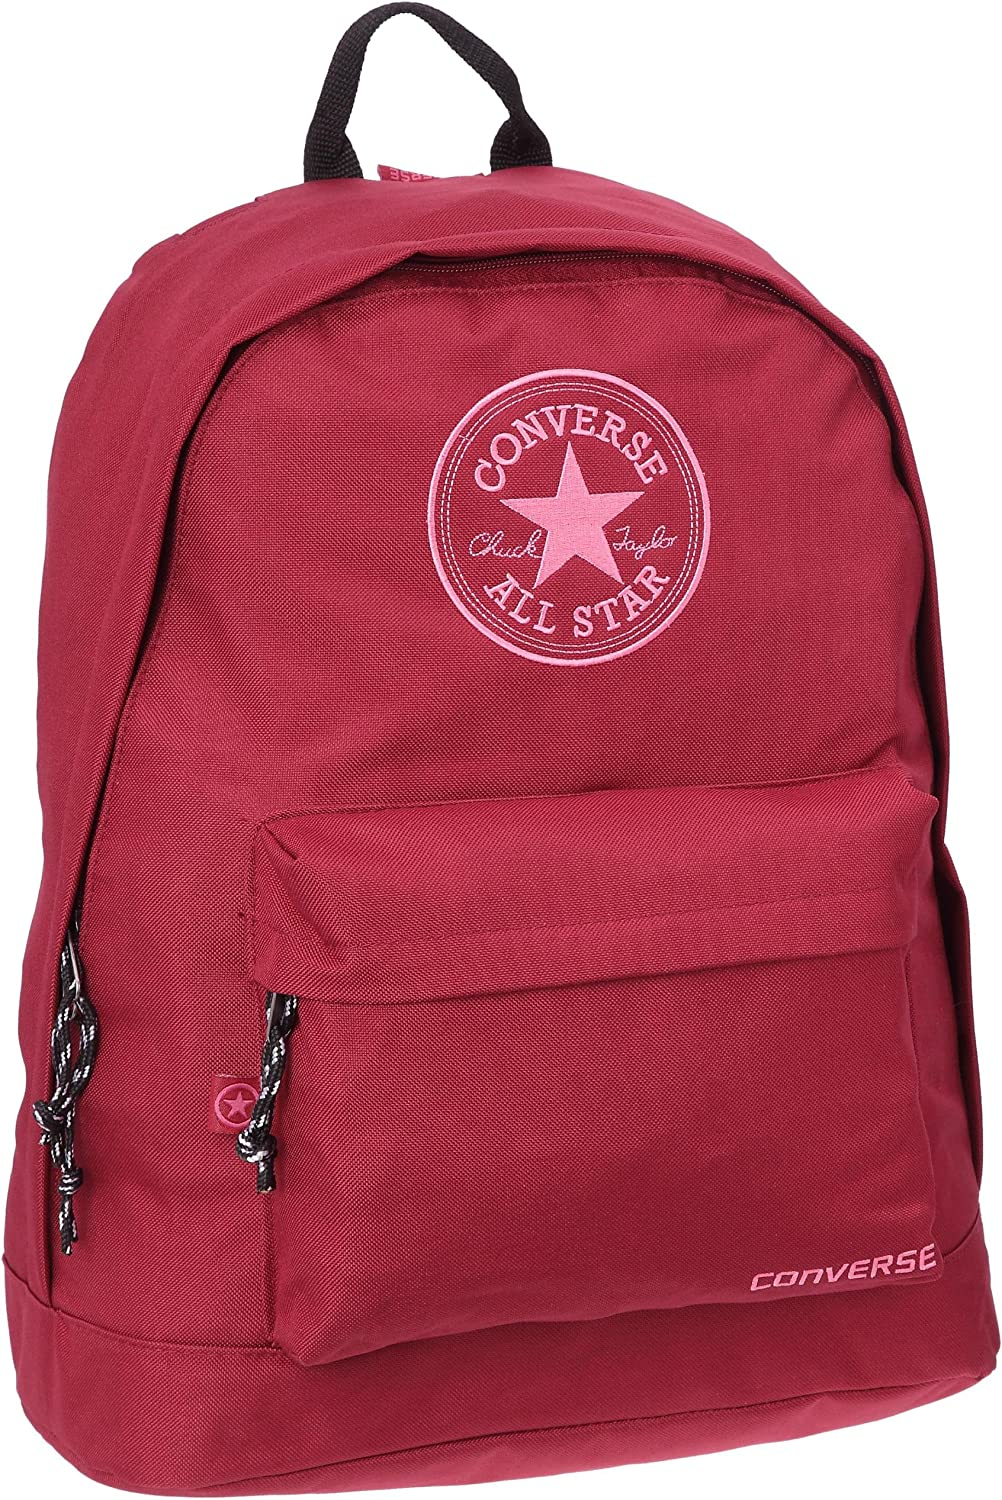 Converse Chuck Taylor All Star Essentials Basic Backpack, Sac dos mixte adulte Rouge fonc, Textile